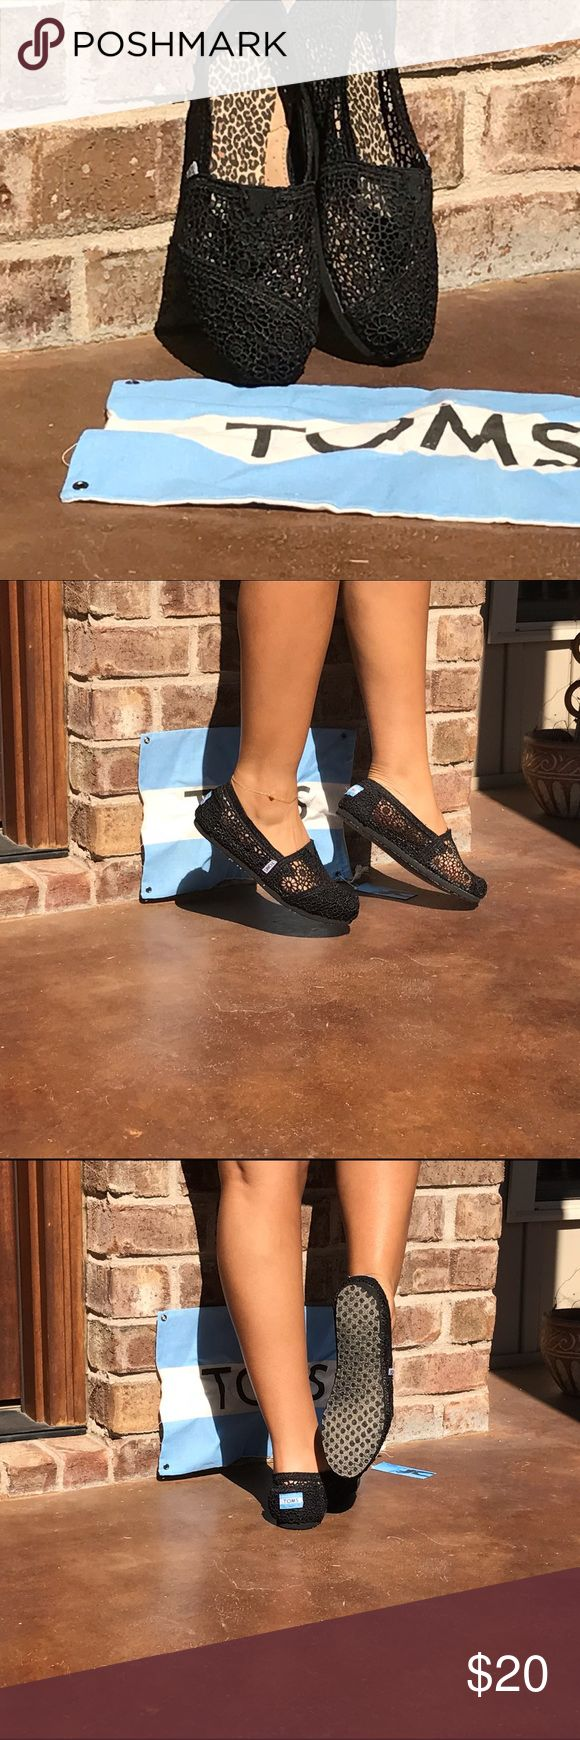 Black Crochet TOMS Size 7 Cute little Black crochet toms...has leopard print inserts to give me a snug fit ( I purchased too big) TOMS Shoes Flats & Loafers